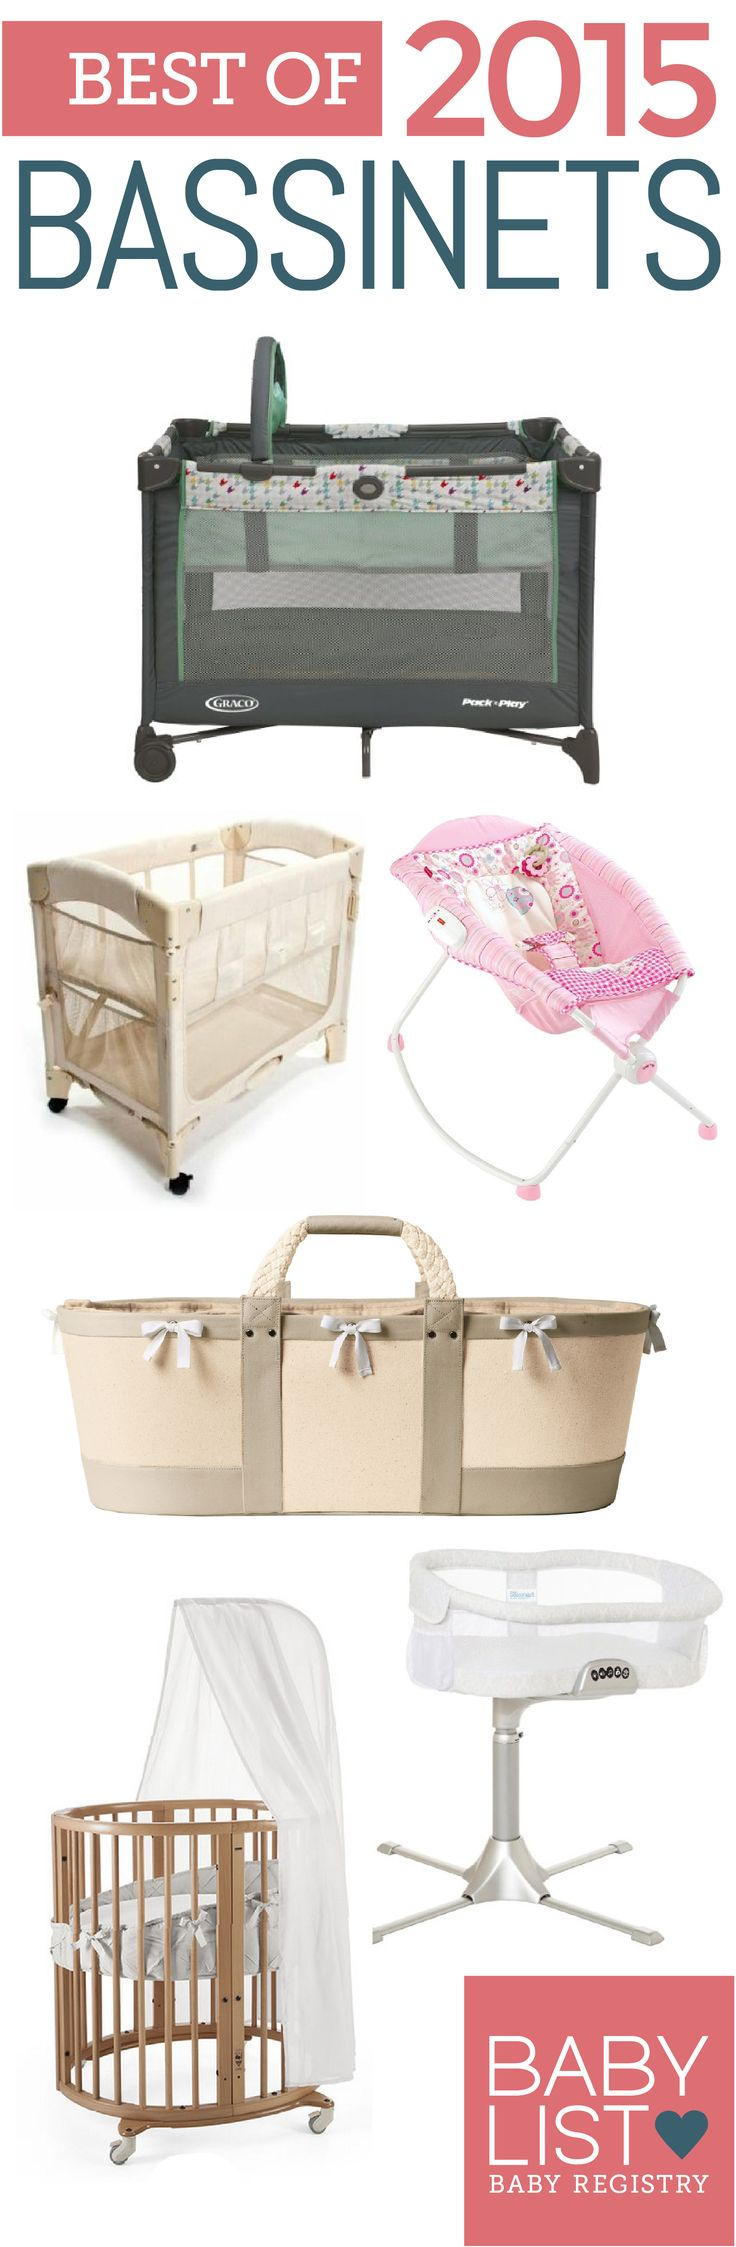 """One parent shared, """"On nights when sleep is scarce, the Halo Bassinest makes life so much less difficult and scary."""" Find more bassinet recommendations from real parents here!"""